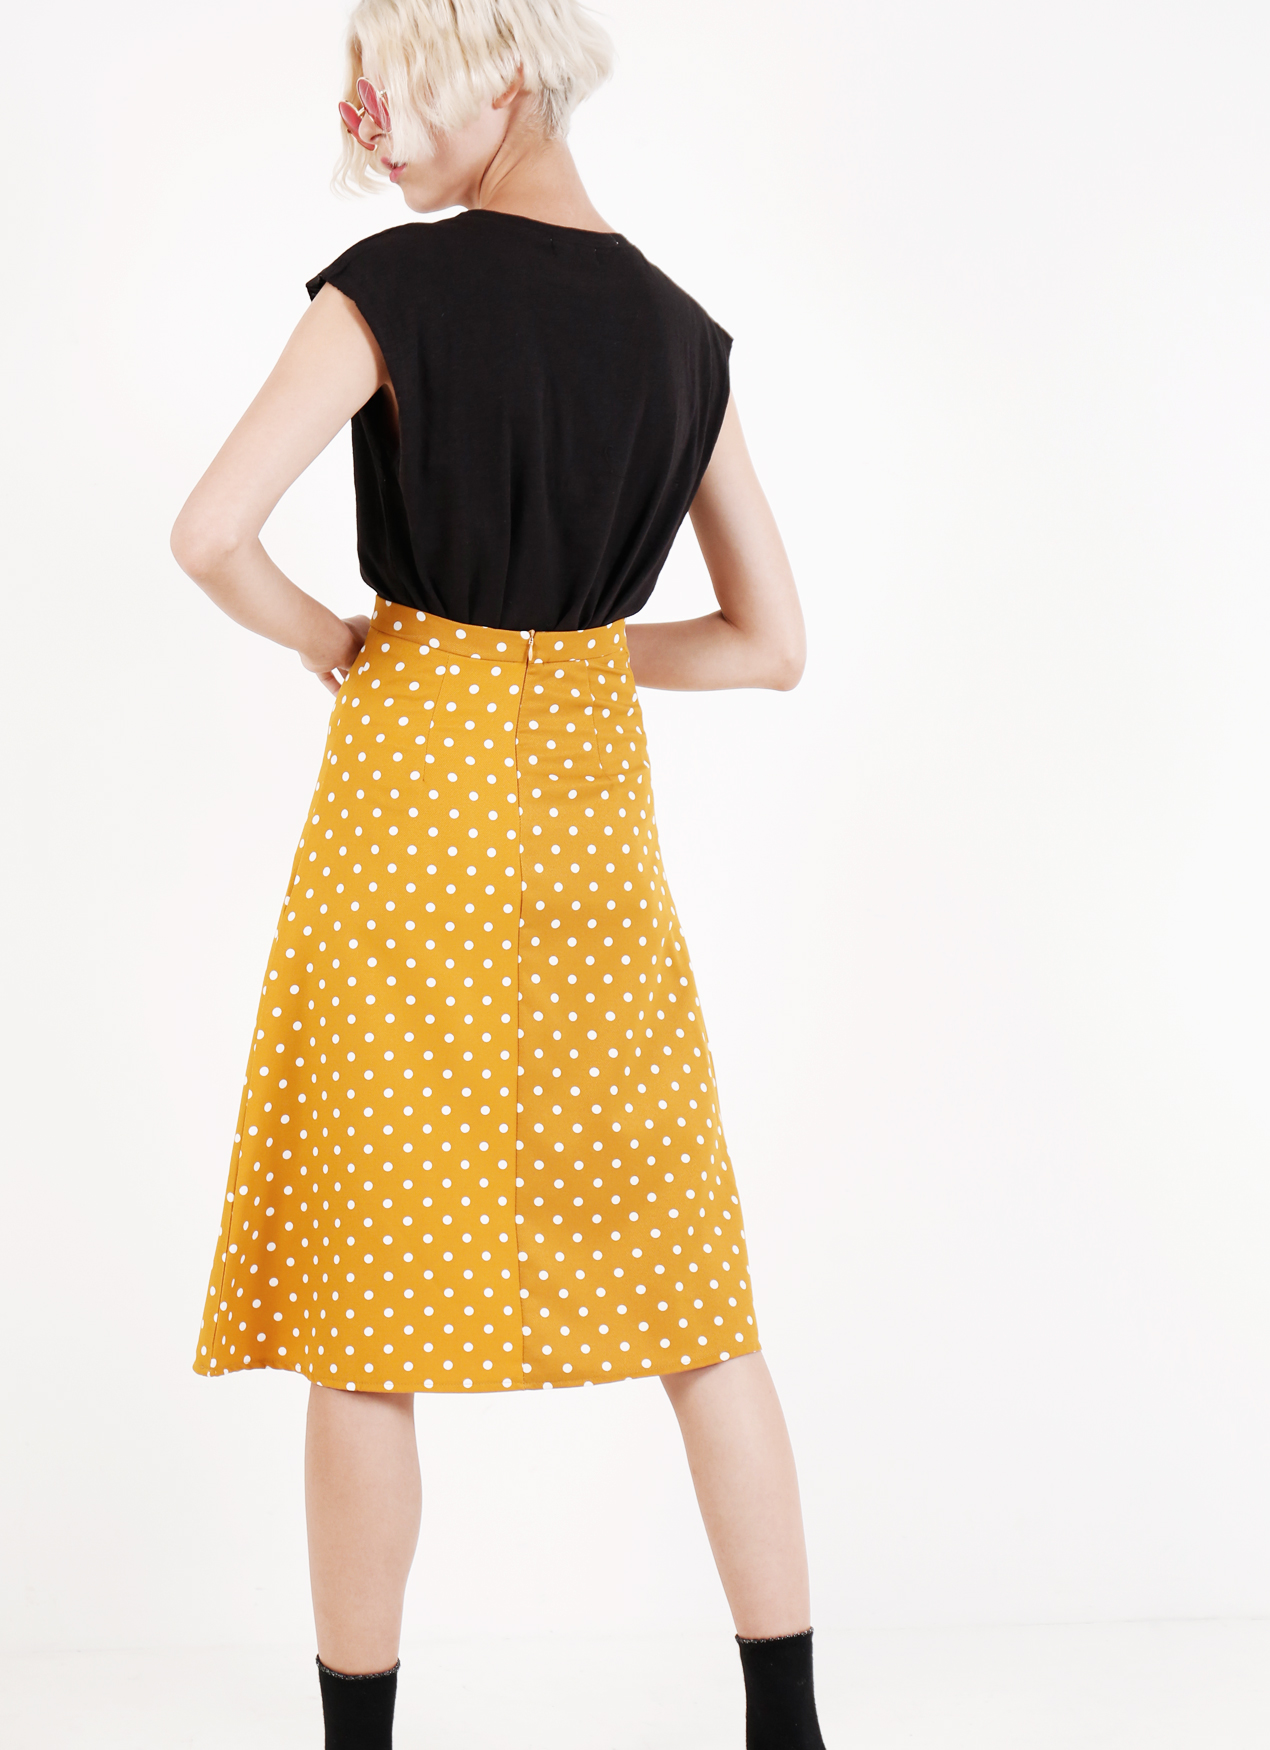 BOWN Hilarie Skirt - Yellow